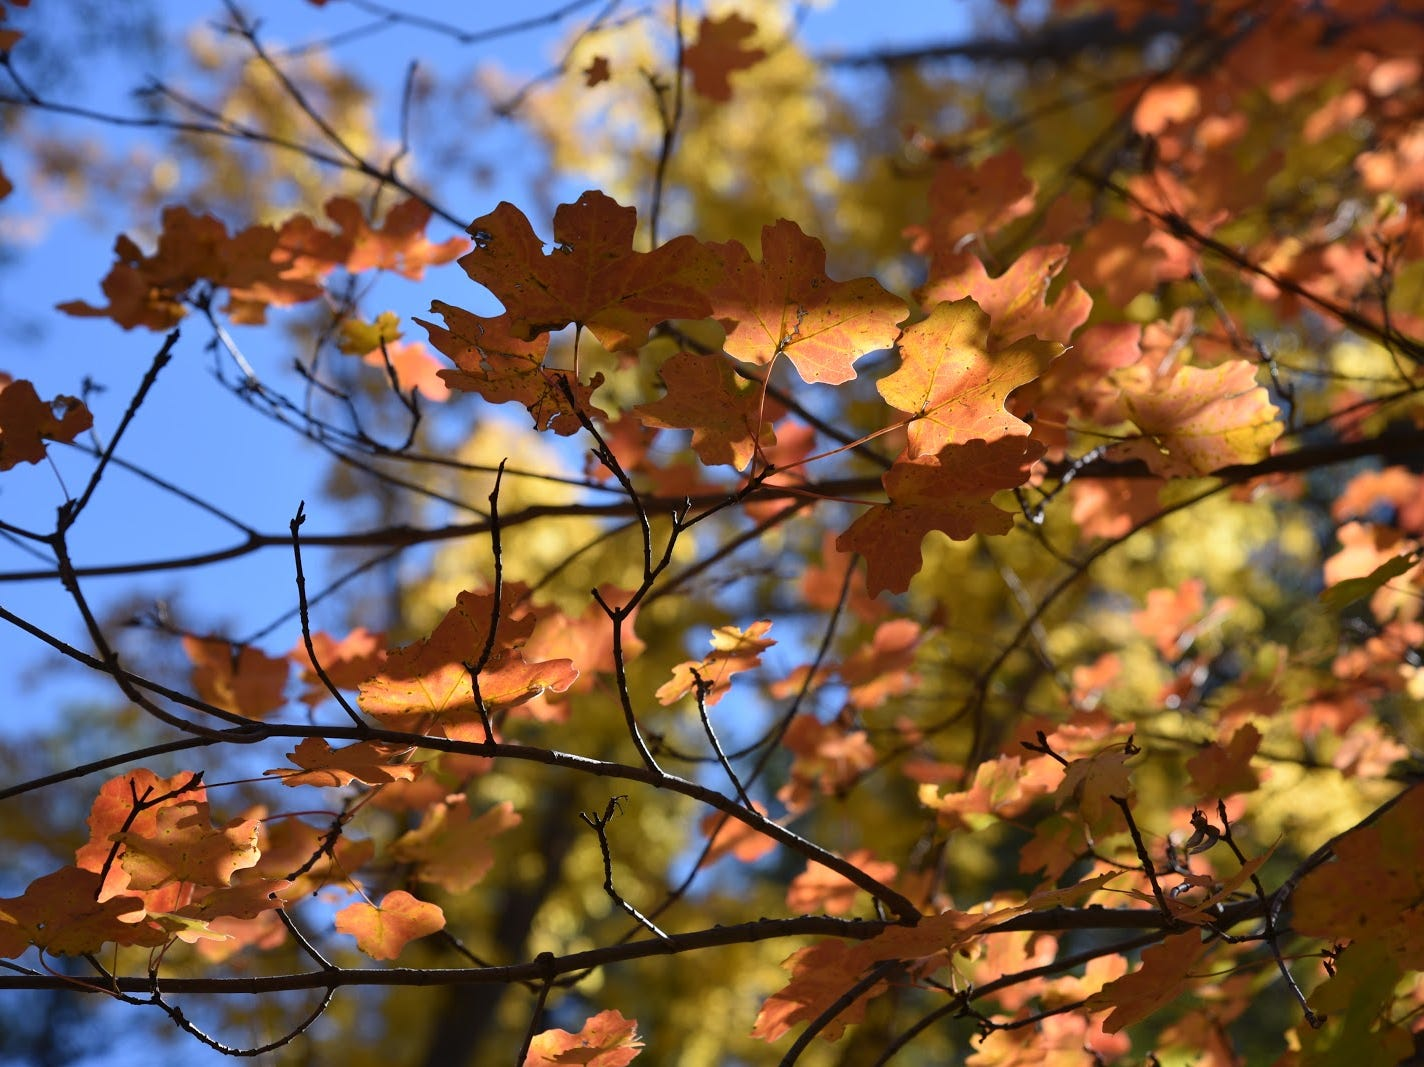 Bigtooth maple leaves glow in the sun.